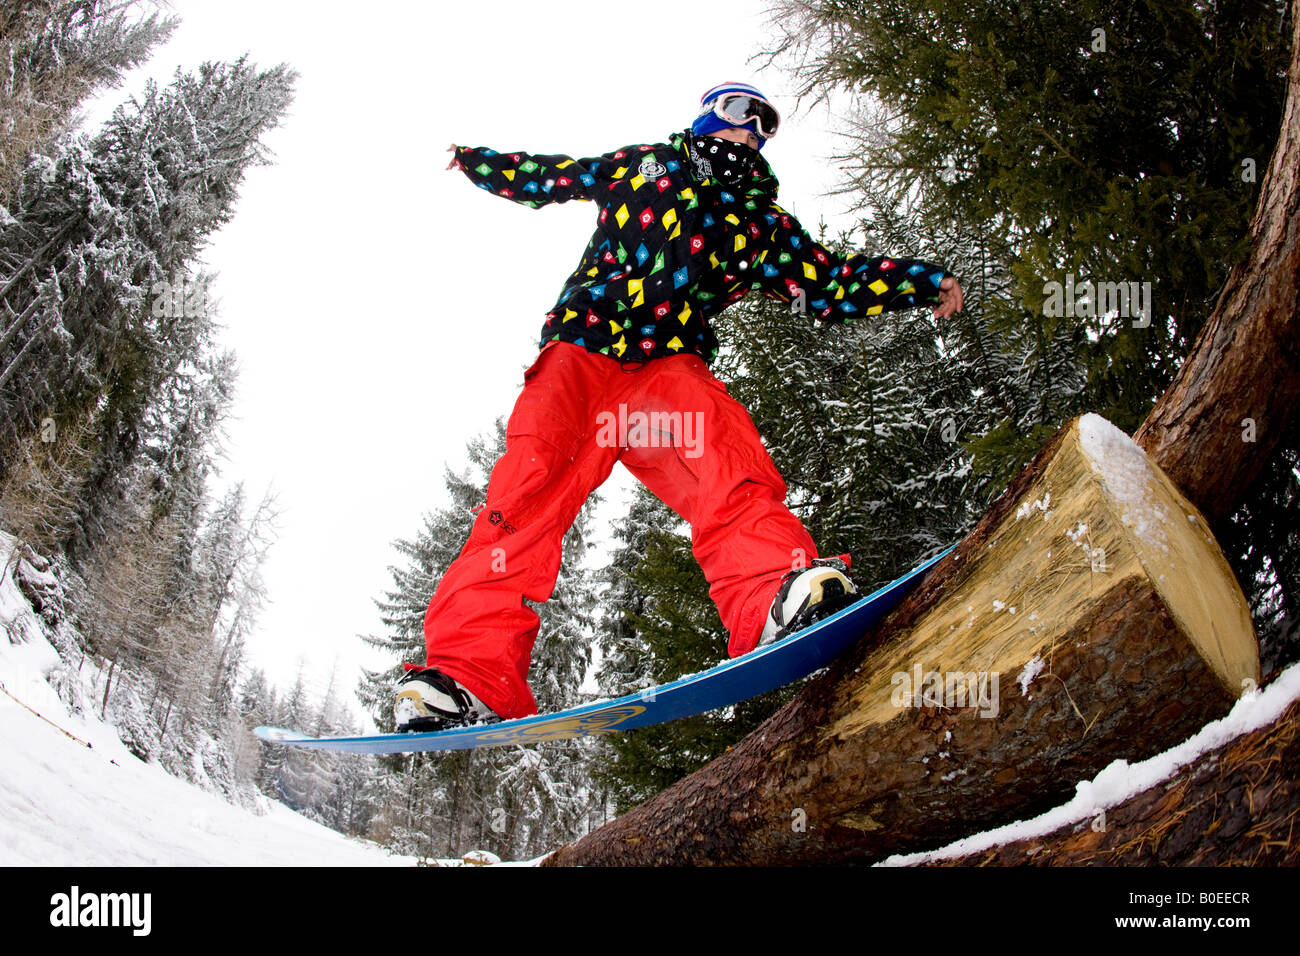 Snowboarder slides a tree, Alps - Stock Image